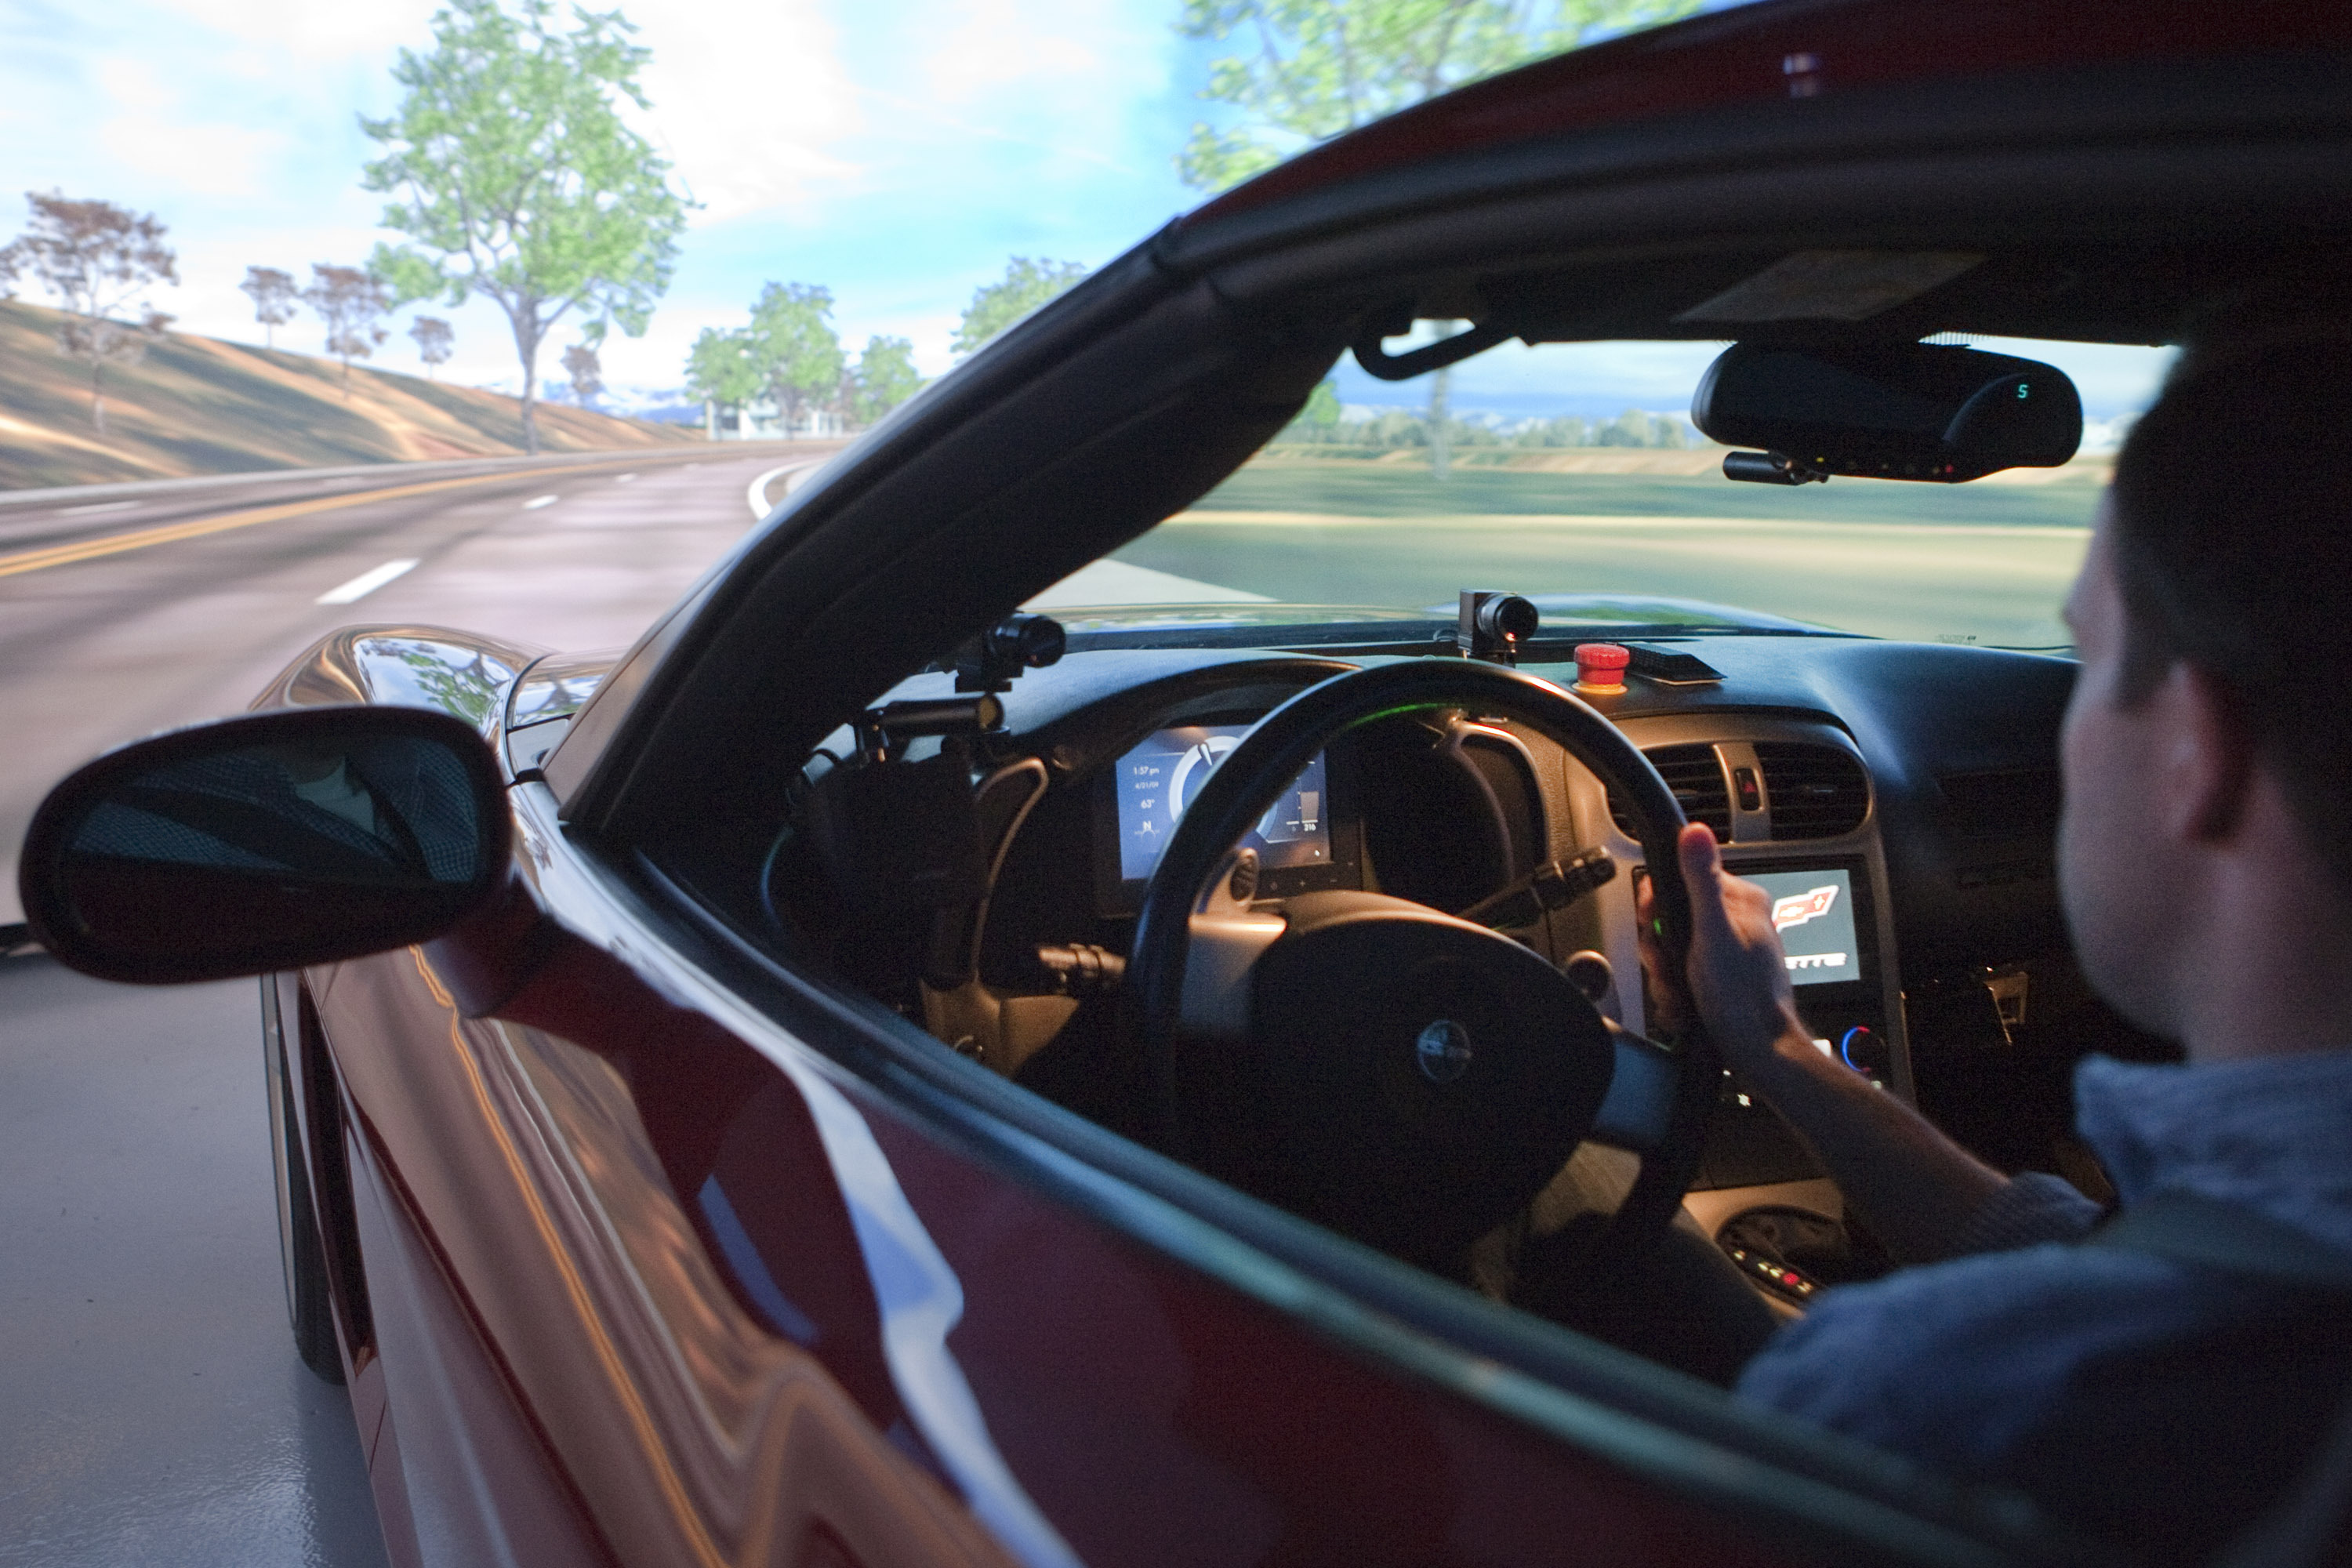 GM demonstrates the simulator that its engineers use to test new infotainment features.